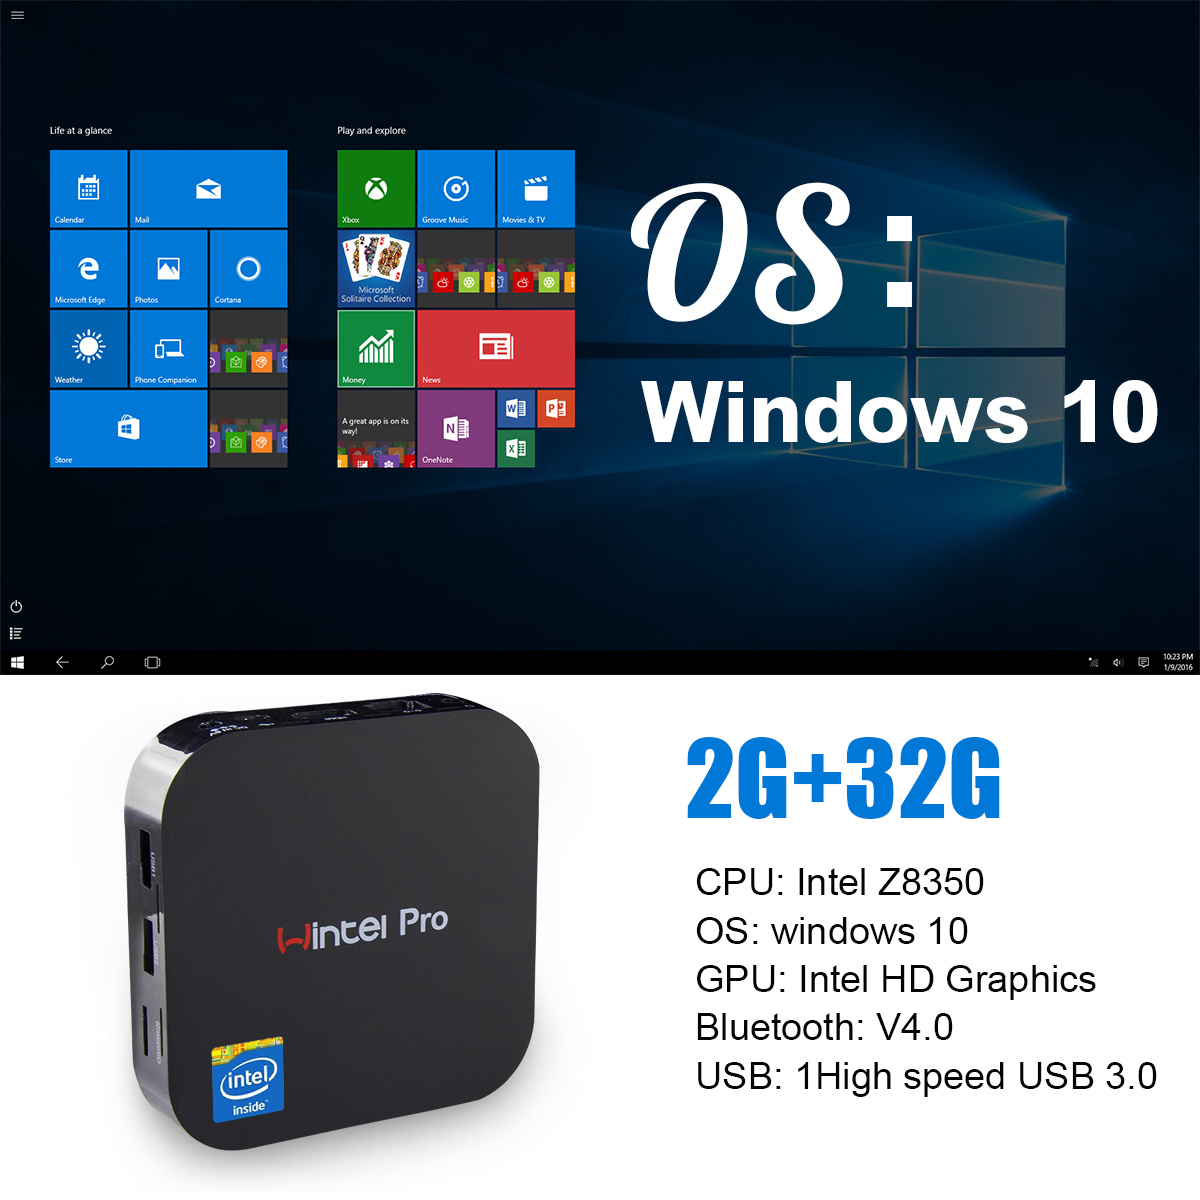 Xcy — Mini PC windows W8 Pro, Intel Z8350, 2 go/32 go, bluetooth 2.4GHz, usb, wi-fi, processeur Intel, bon marché